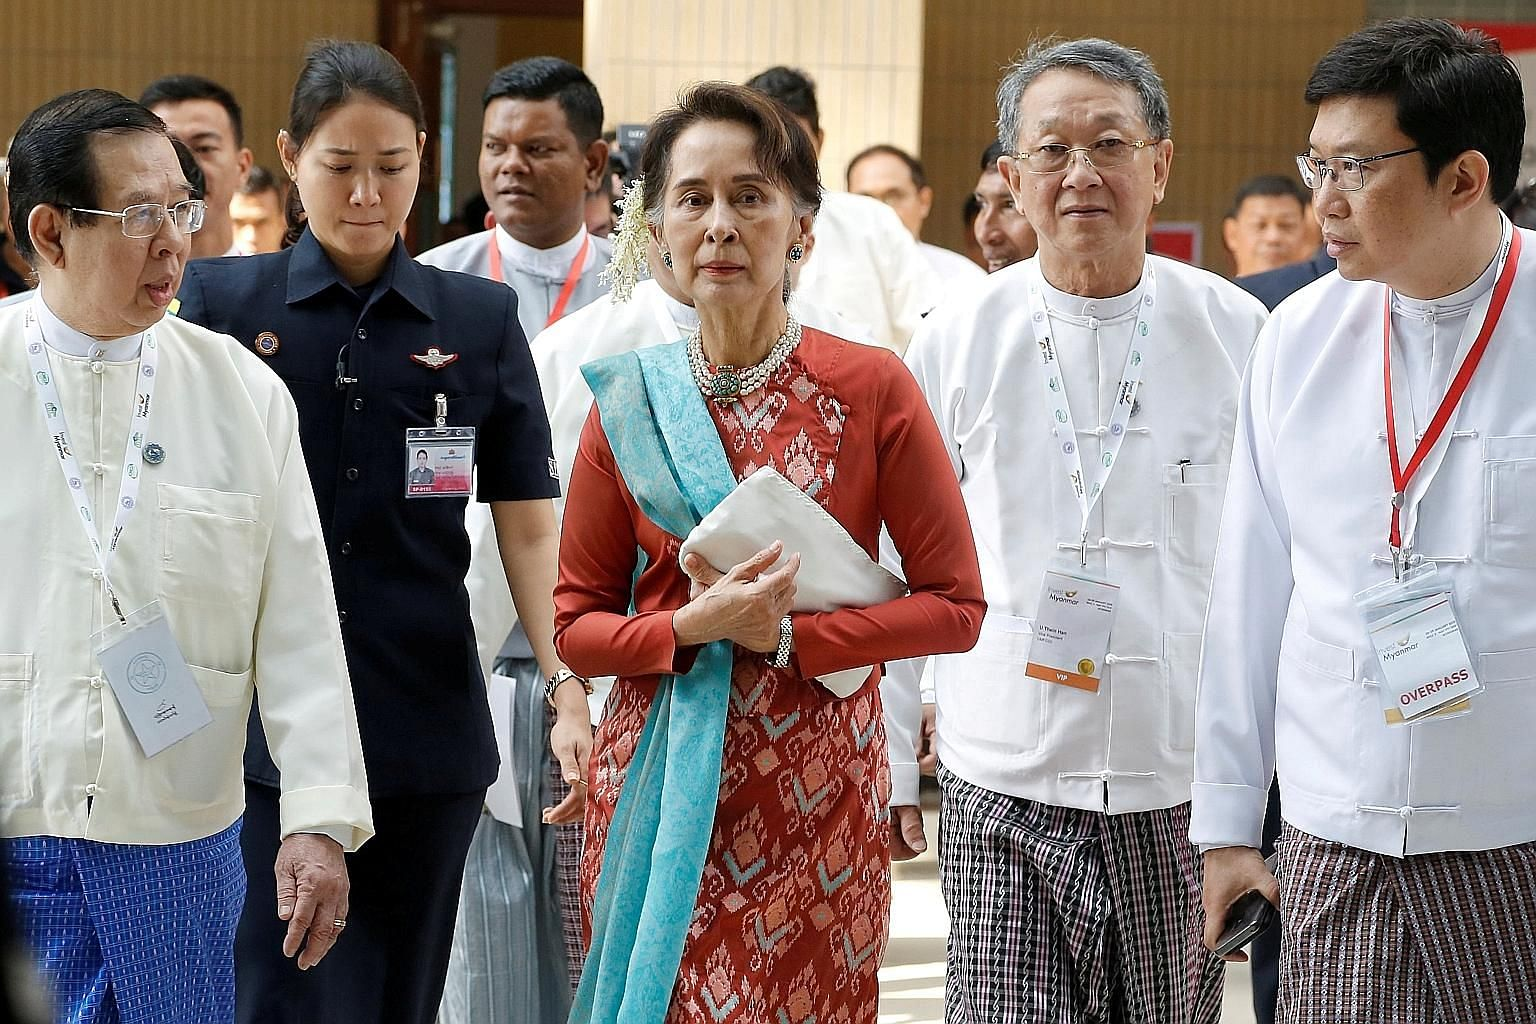 While Ms Aung San Suu Kyi's National League for Democracy is still expected to do better than other political parties at the polls next year, its majority could suffer severe losses, say analysts. Escalating ethnic conflicts and slowing economic grow